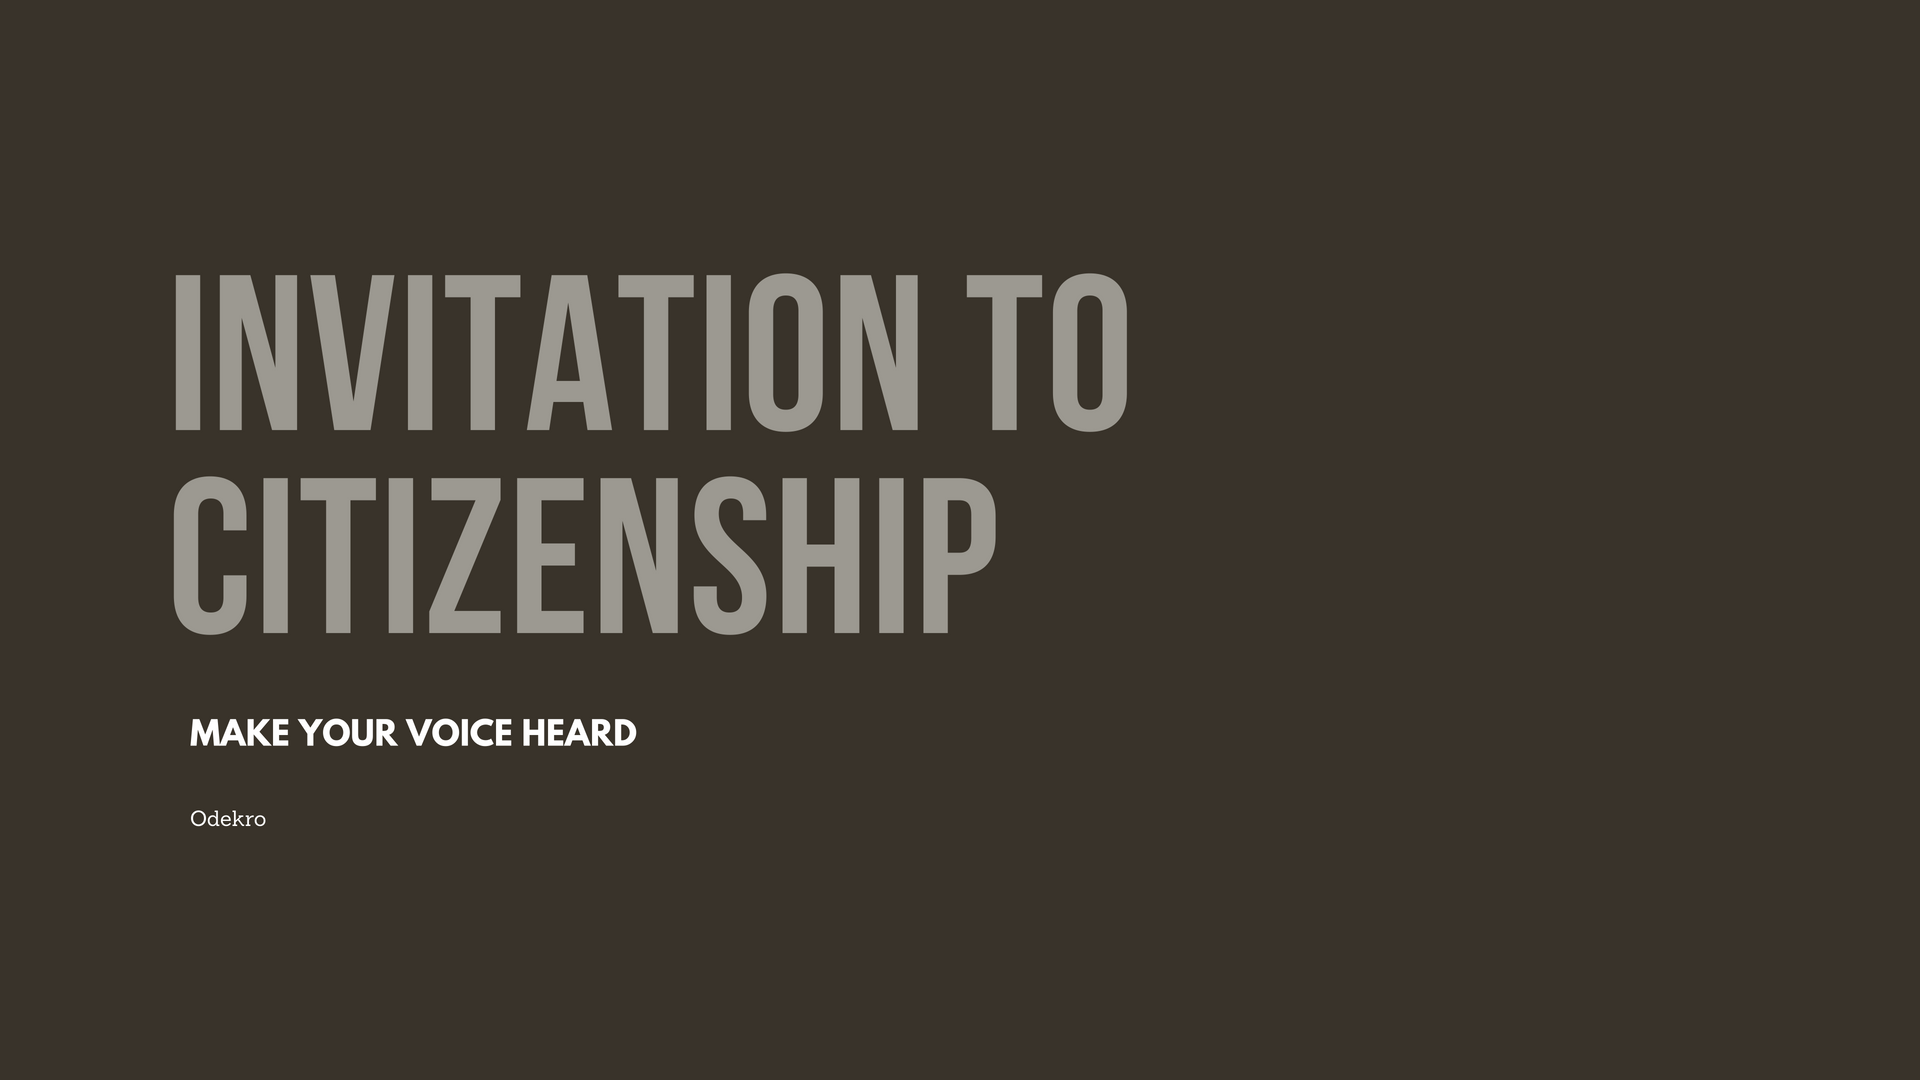 Invitation to Citizenship (Make Your Voice Heard)